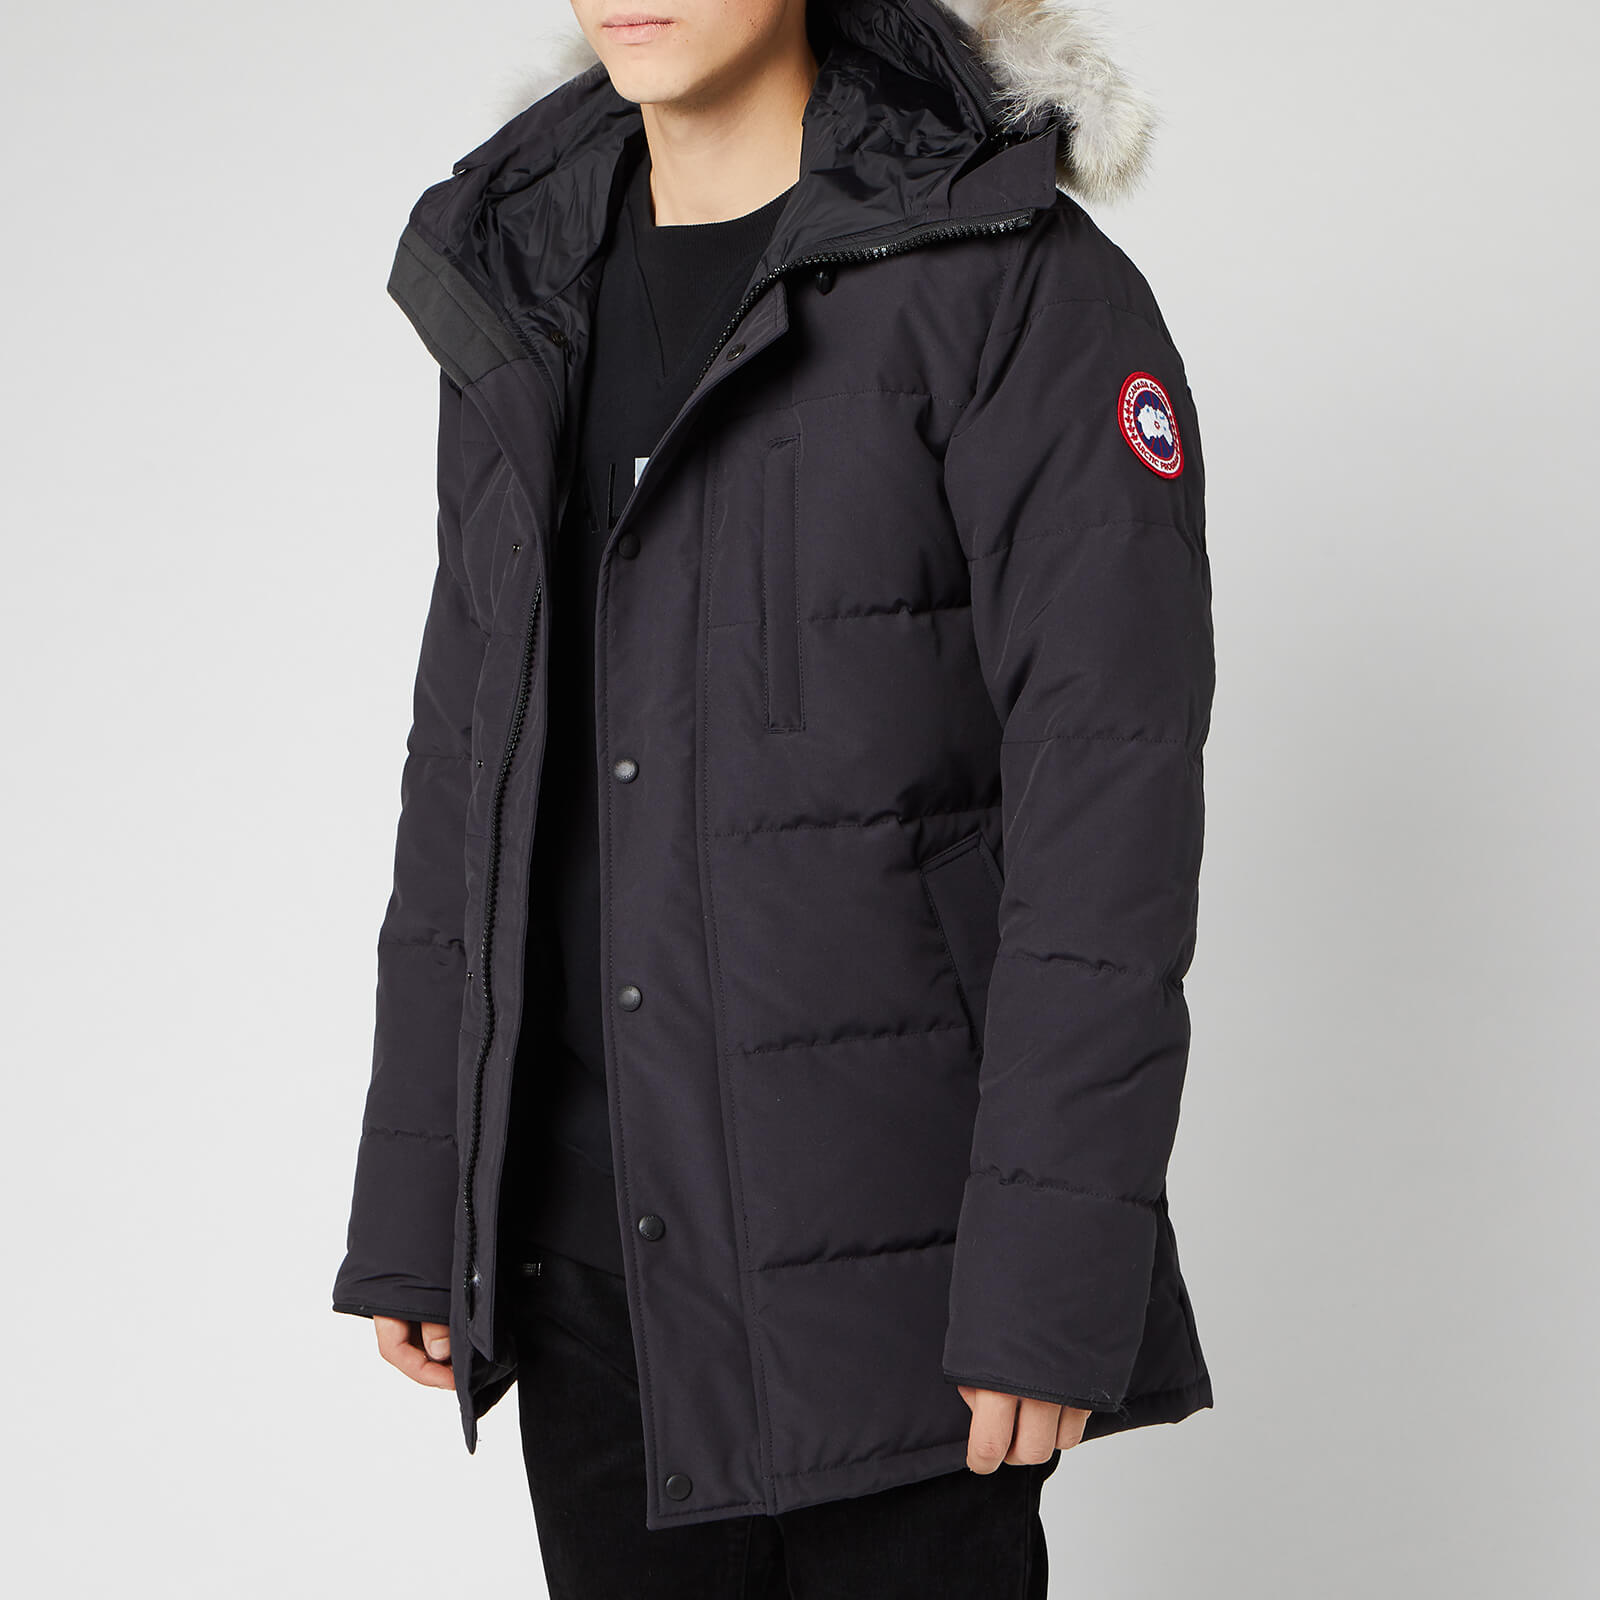 timeless design e8c06 c43a1 Canada Goose Men's Carson Parka Jacket - Navy